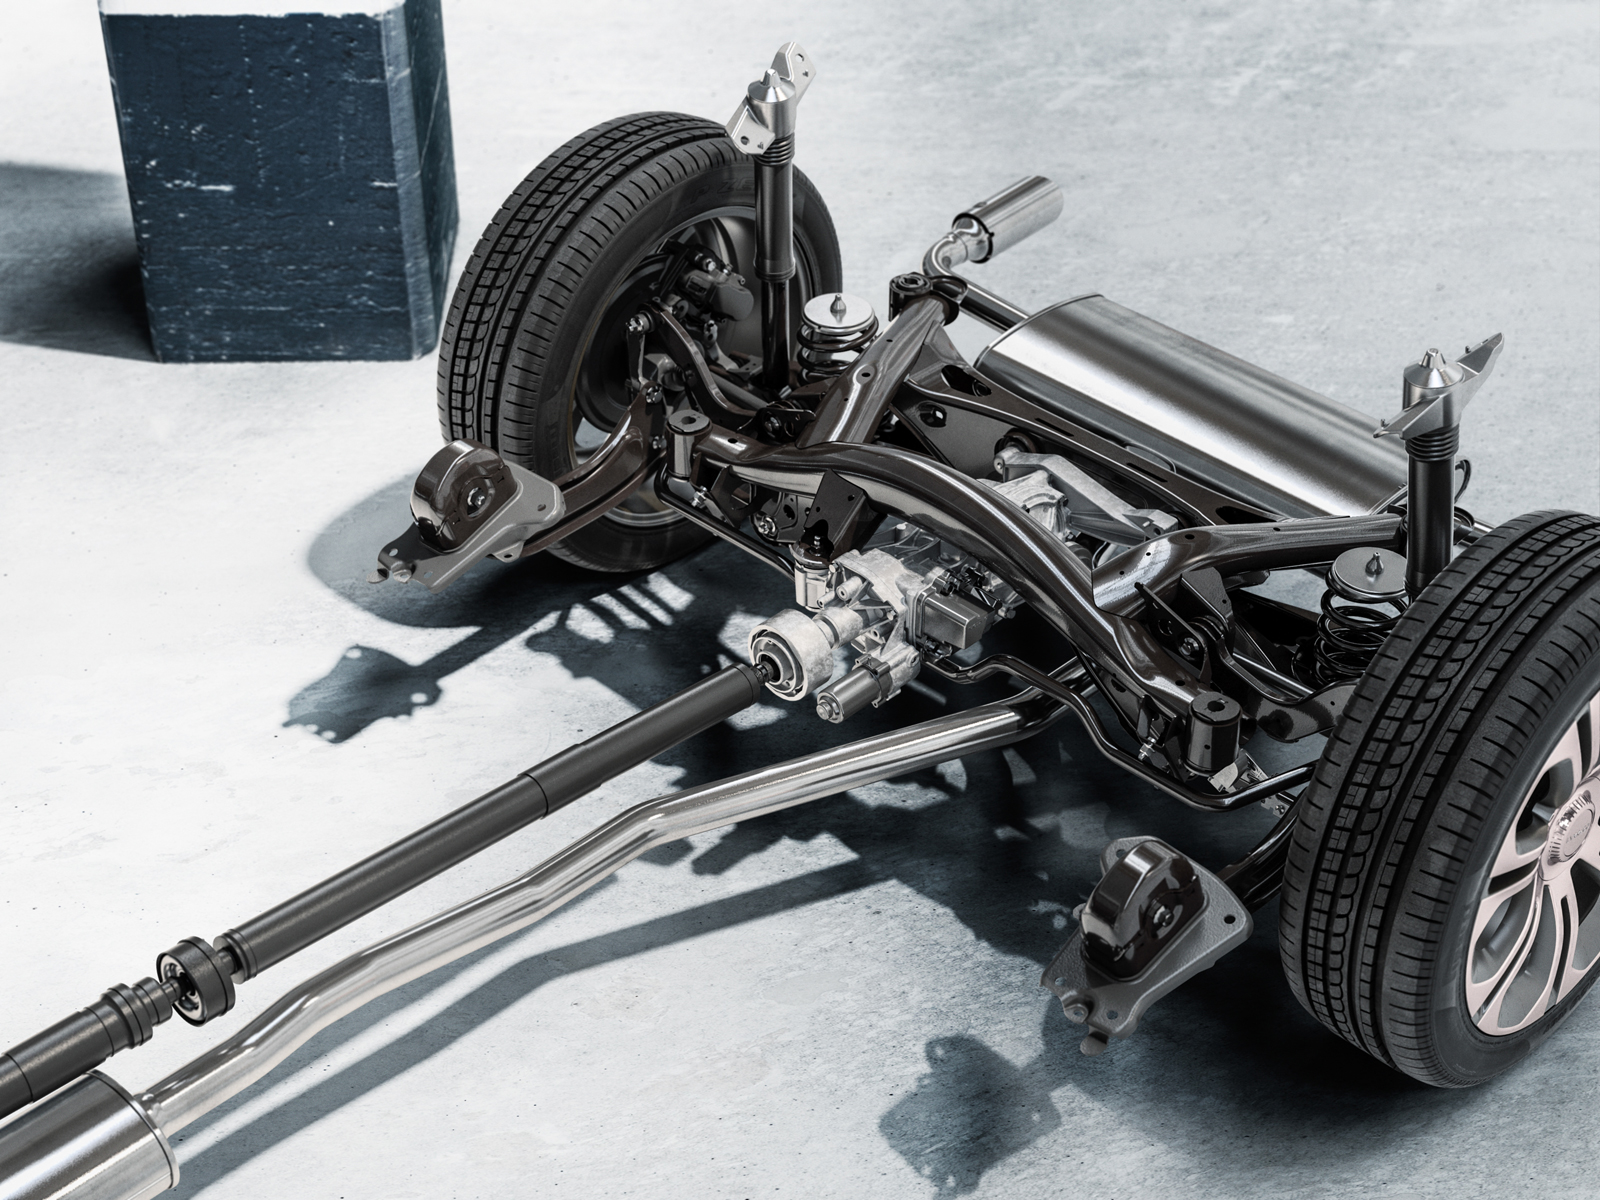 LYNK & CO, The Innovative Swedish Car Brand Looking To Change An Industry 9